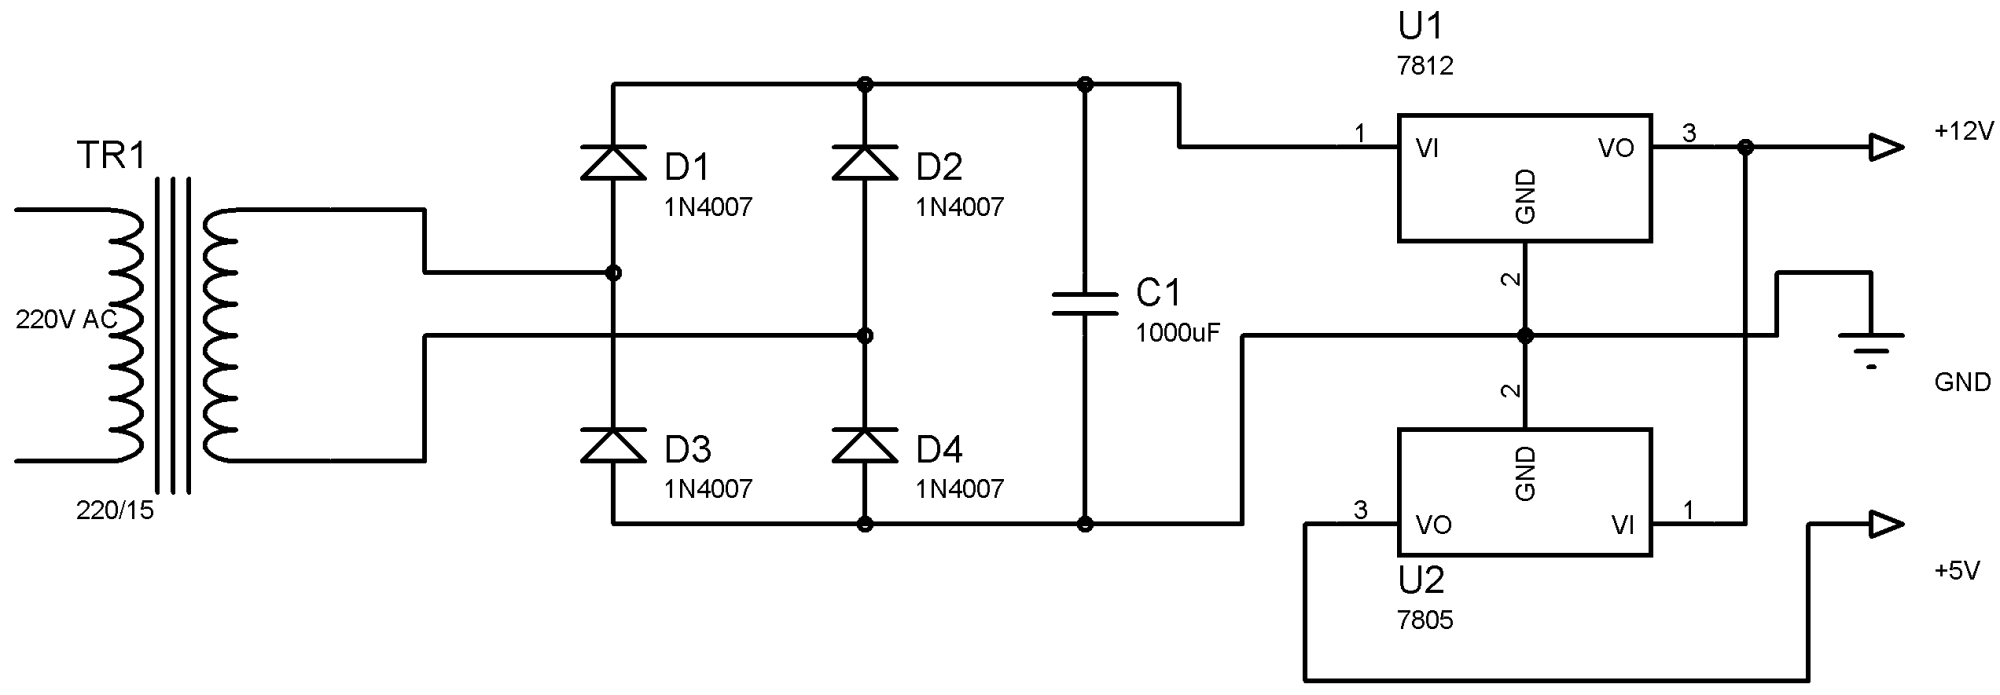 hight resolution of 1 power supply section